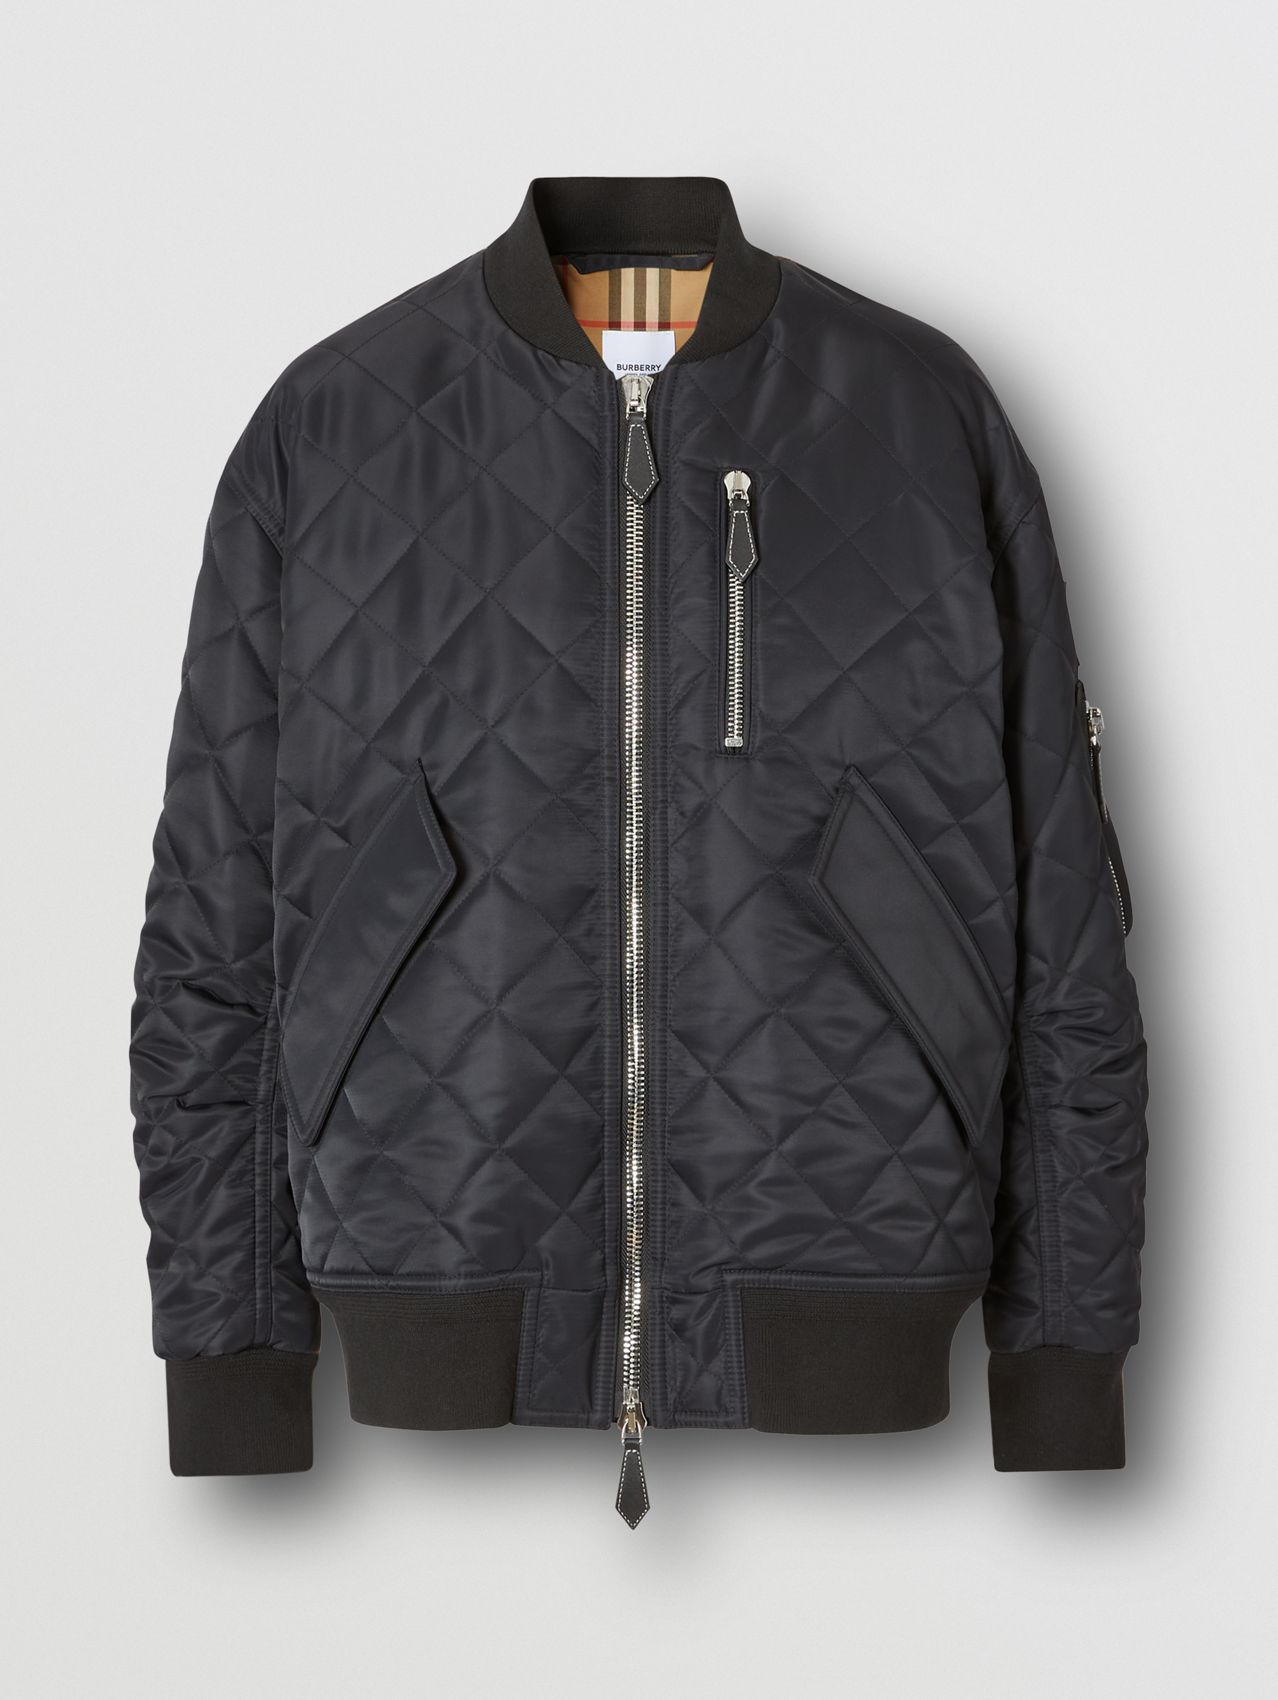 Diamond Quilted Nylon and Cotton Bomber Jacket in Black